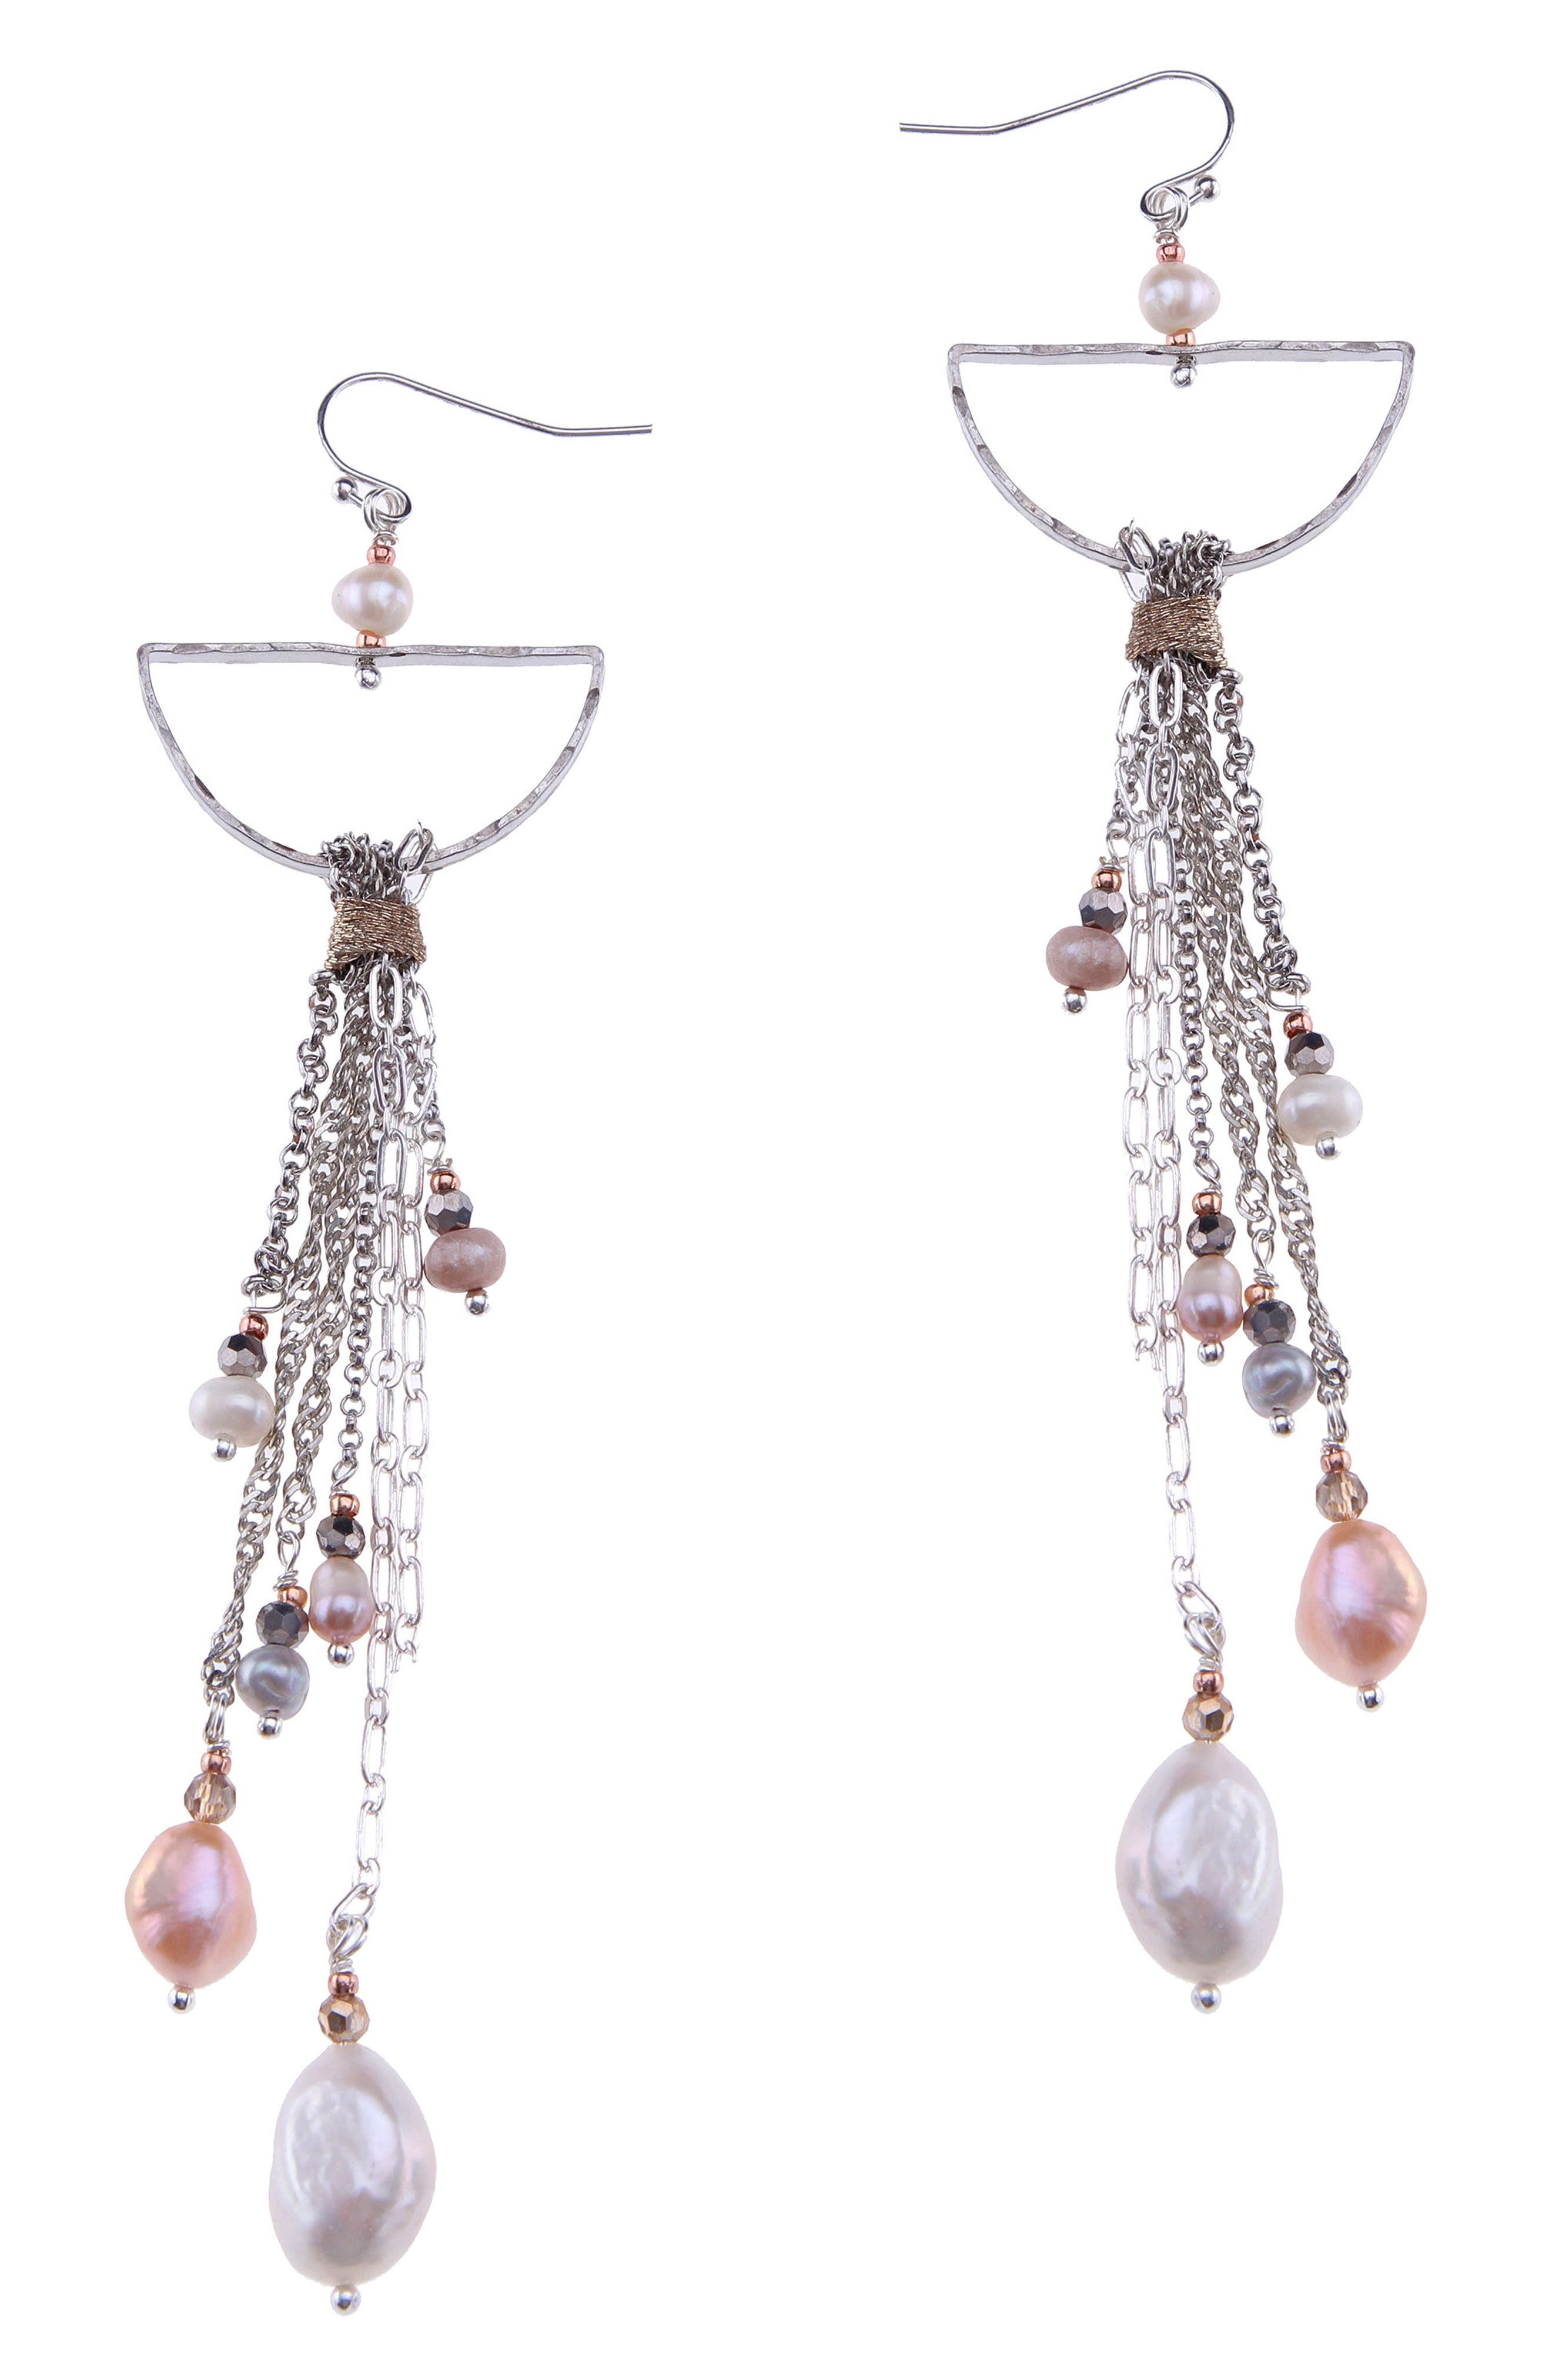 Freshwater Pearl & Chain Statement Earrings,                         Main,                         color, White Pearl